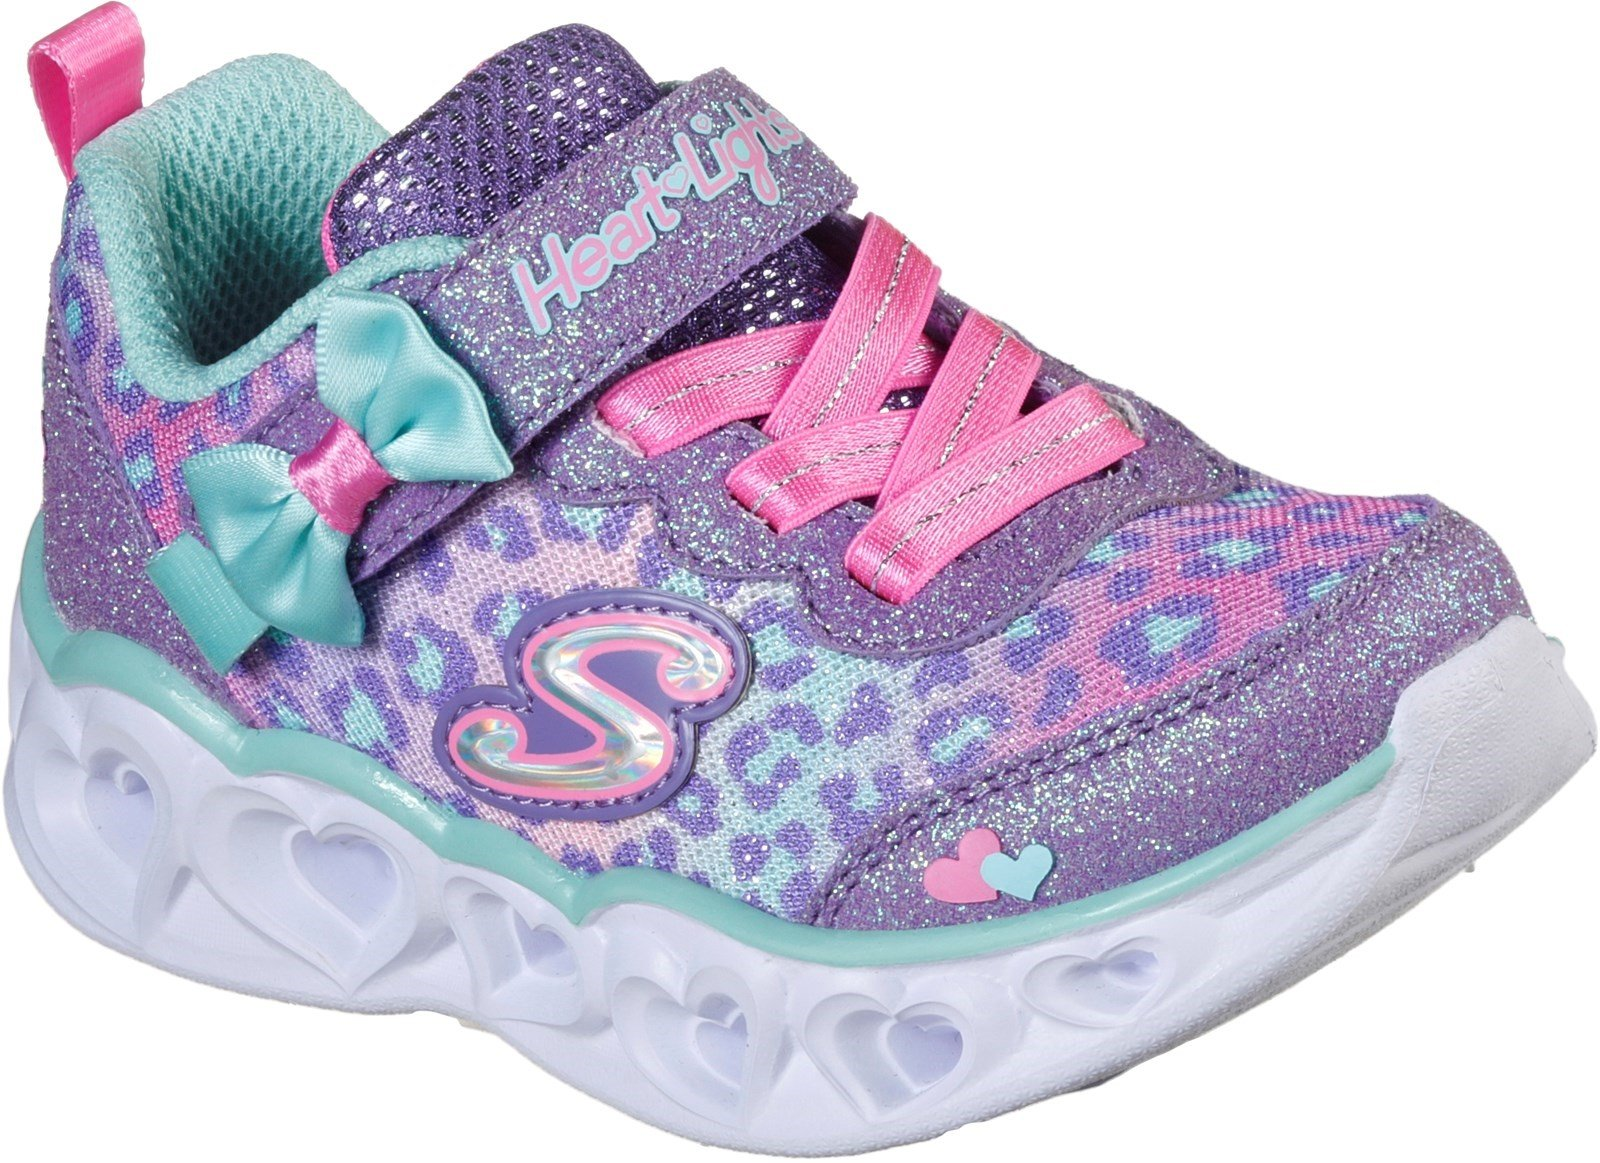 Skechers Kid's Heart Lights Touch Fastening Trainer Various Colours 31134 - Lavender/Aqua 10